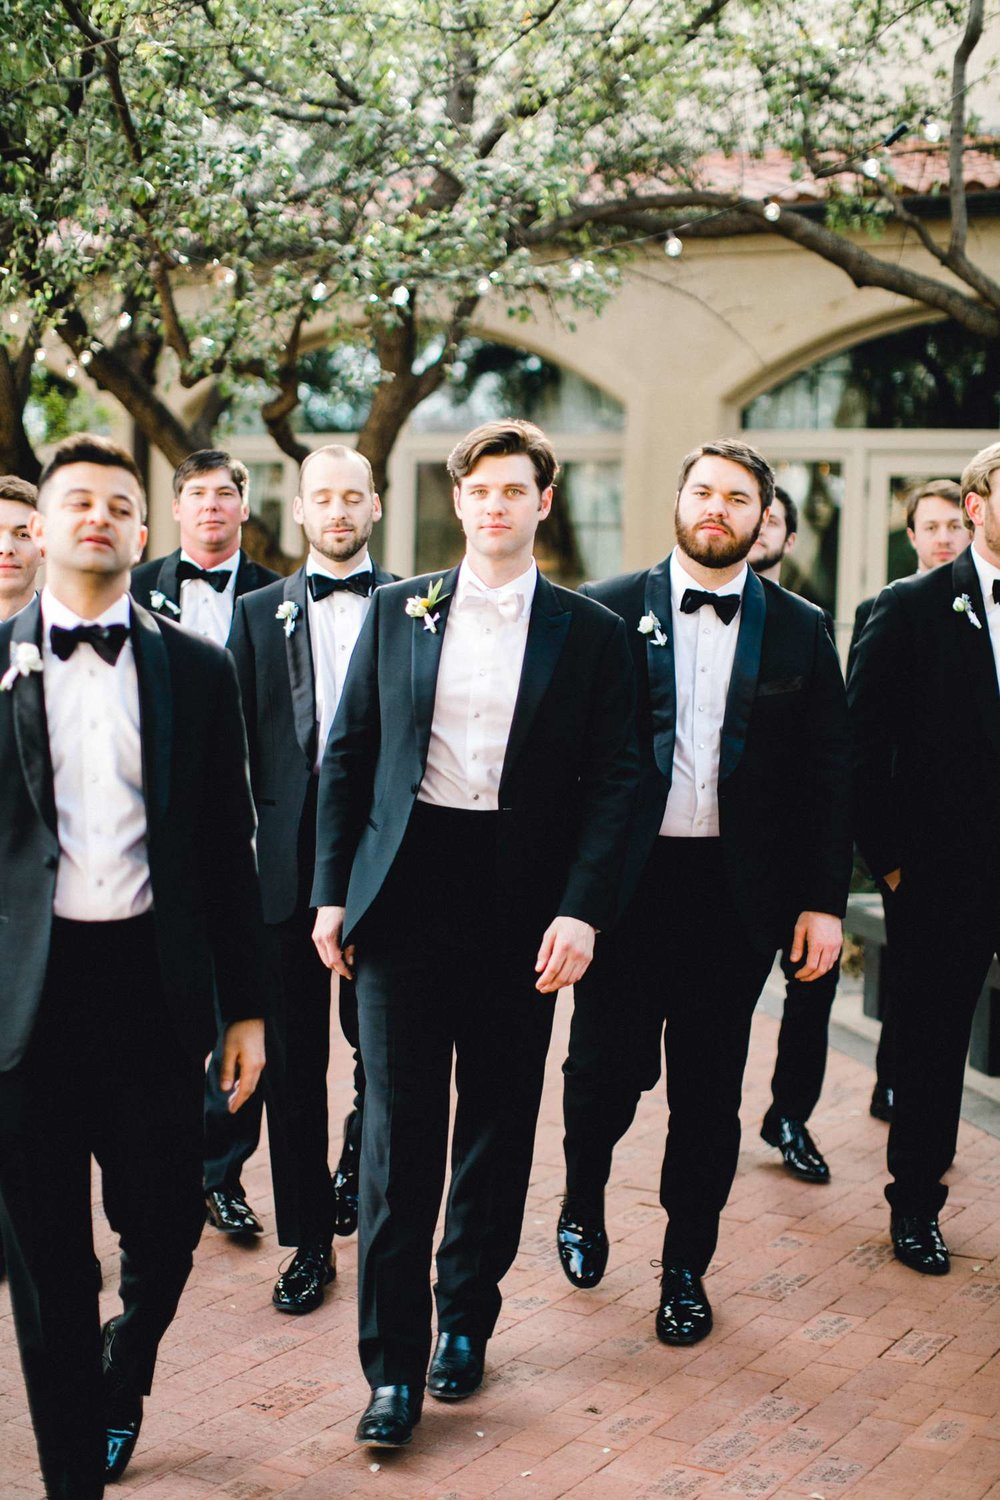 MARLEE+LLOYD+MORGAN+ALLEEJ+TEXAS+TECH+MERKET+ALUMNI+WEDDINGS+LUBBOCK+WEST+TABLE+CLASSIC+SPAIN_0117.jpg